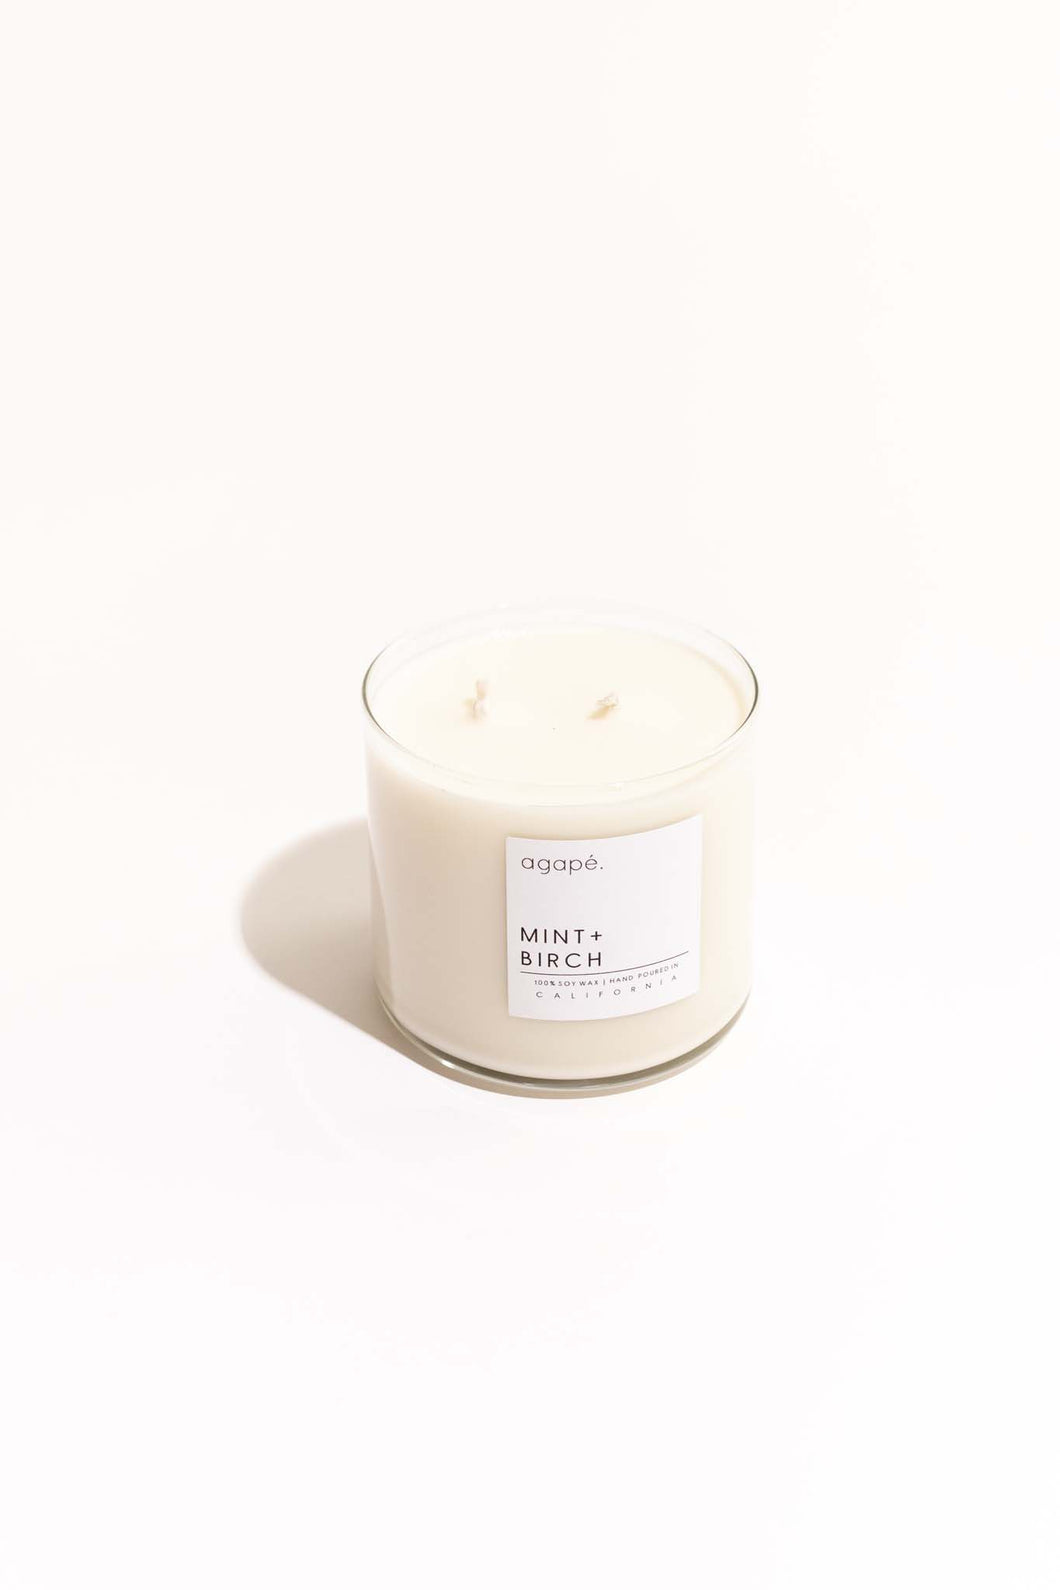 Mint + Birch Double Wick Candle - 18 oz